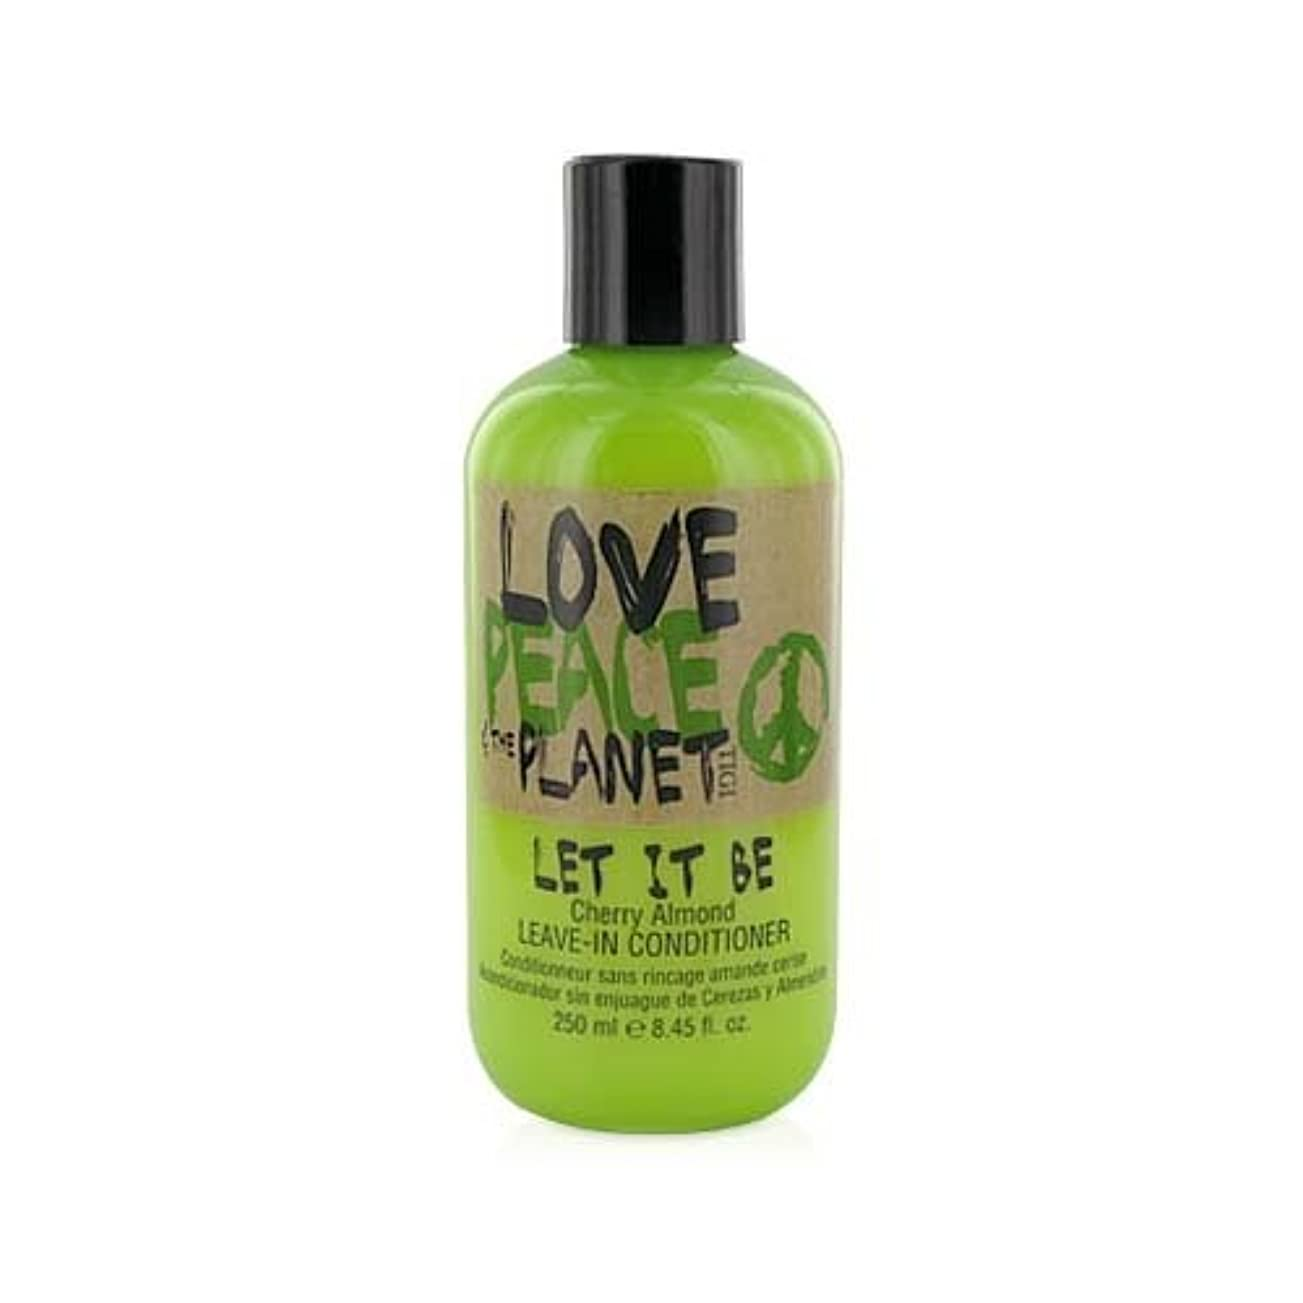 TIGI Love Peace and The Planet Let It Be Cherry Almond Leave-in Conditioner 250 ml (並行輸入品)